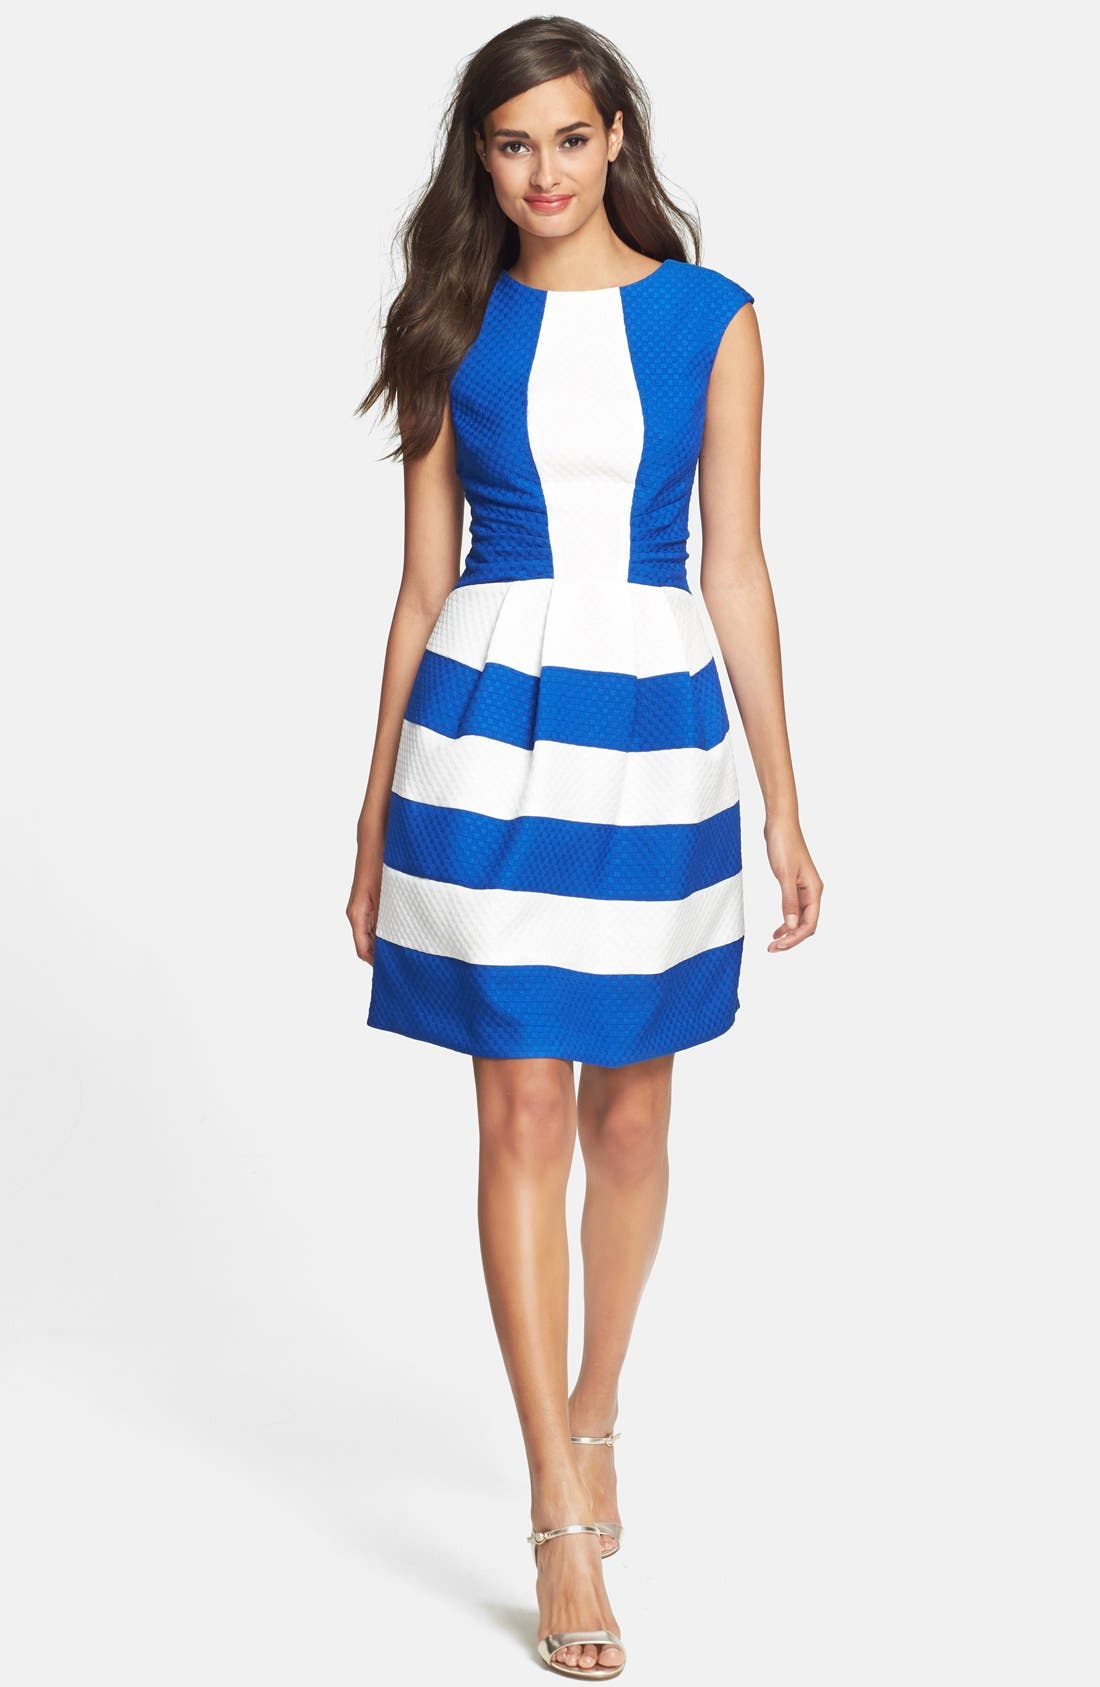 Main Image - Gabby Skye Ruched Colorblock Knit Fit & Flare Dress